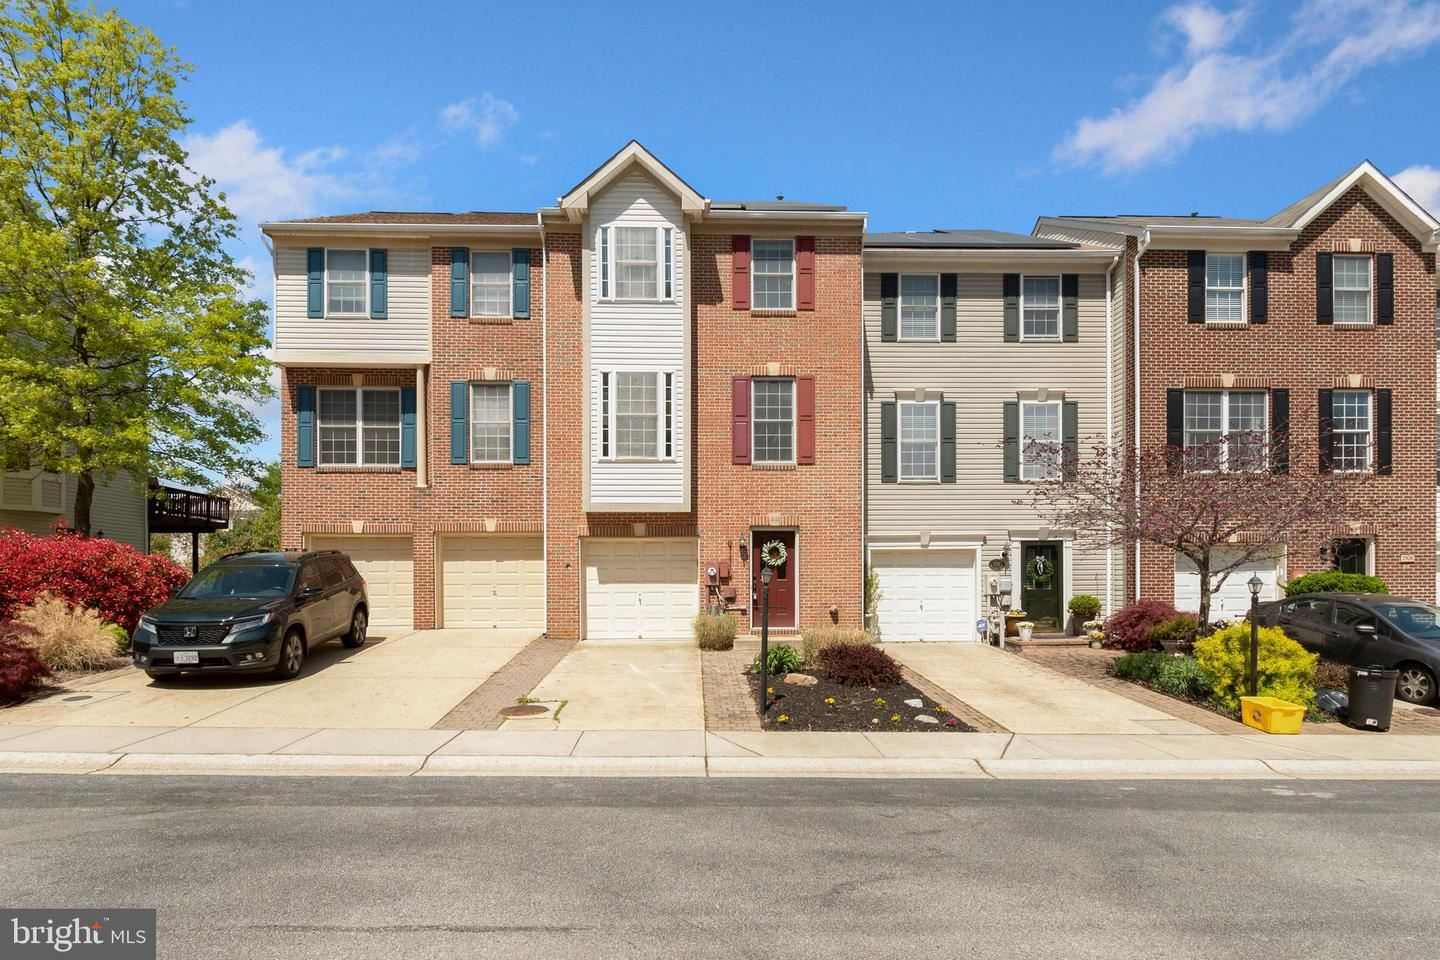 2112 MILLHAVEN DR, Edgewater, MD 21037 - MLS#: MDAA466644